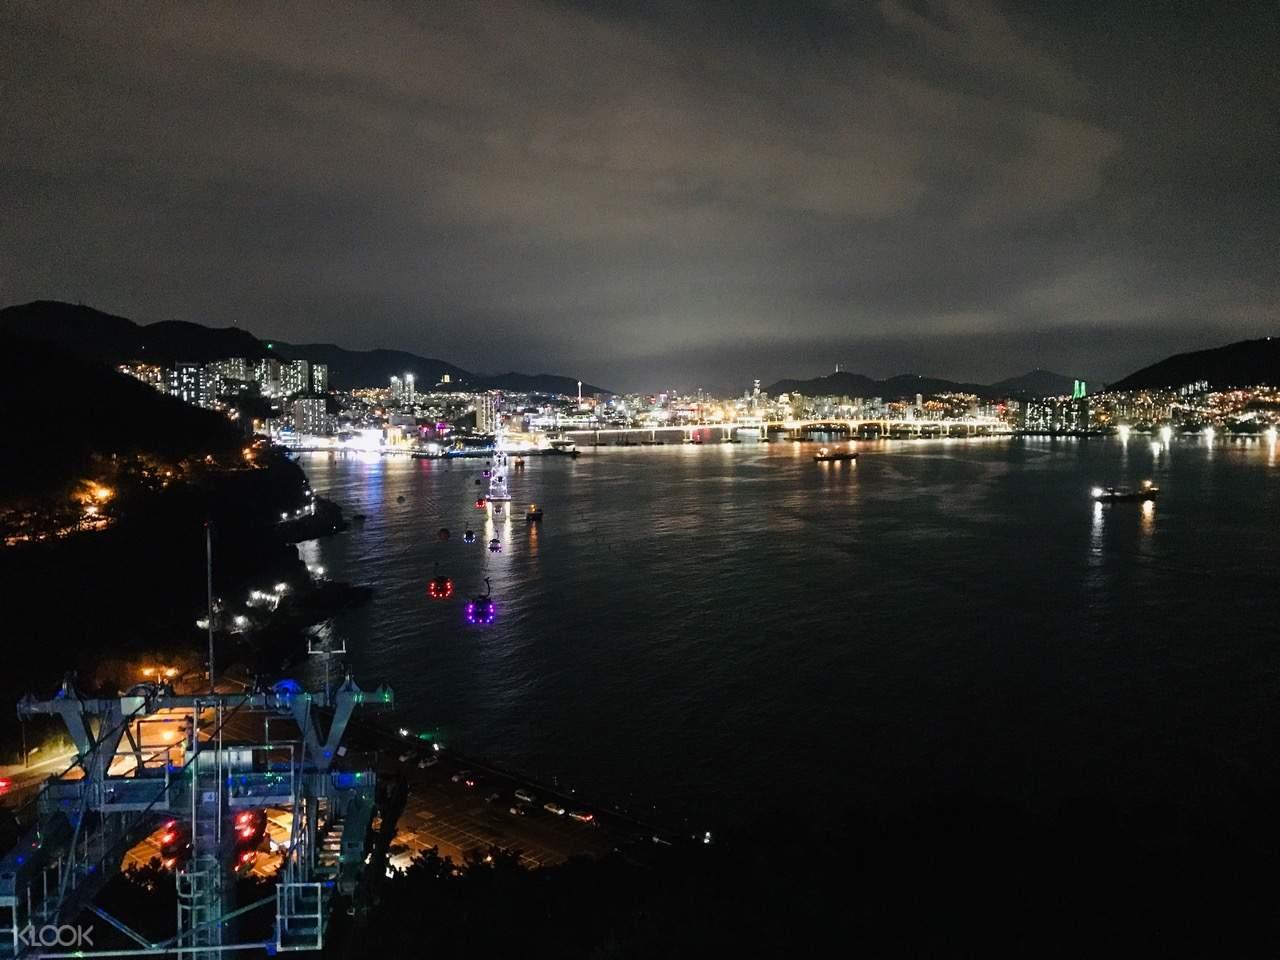 a view of busan from a high vantage point